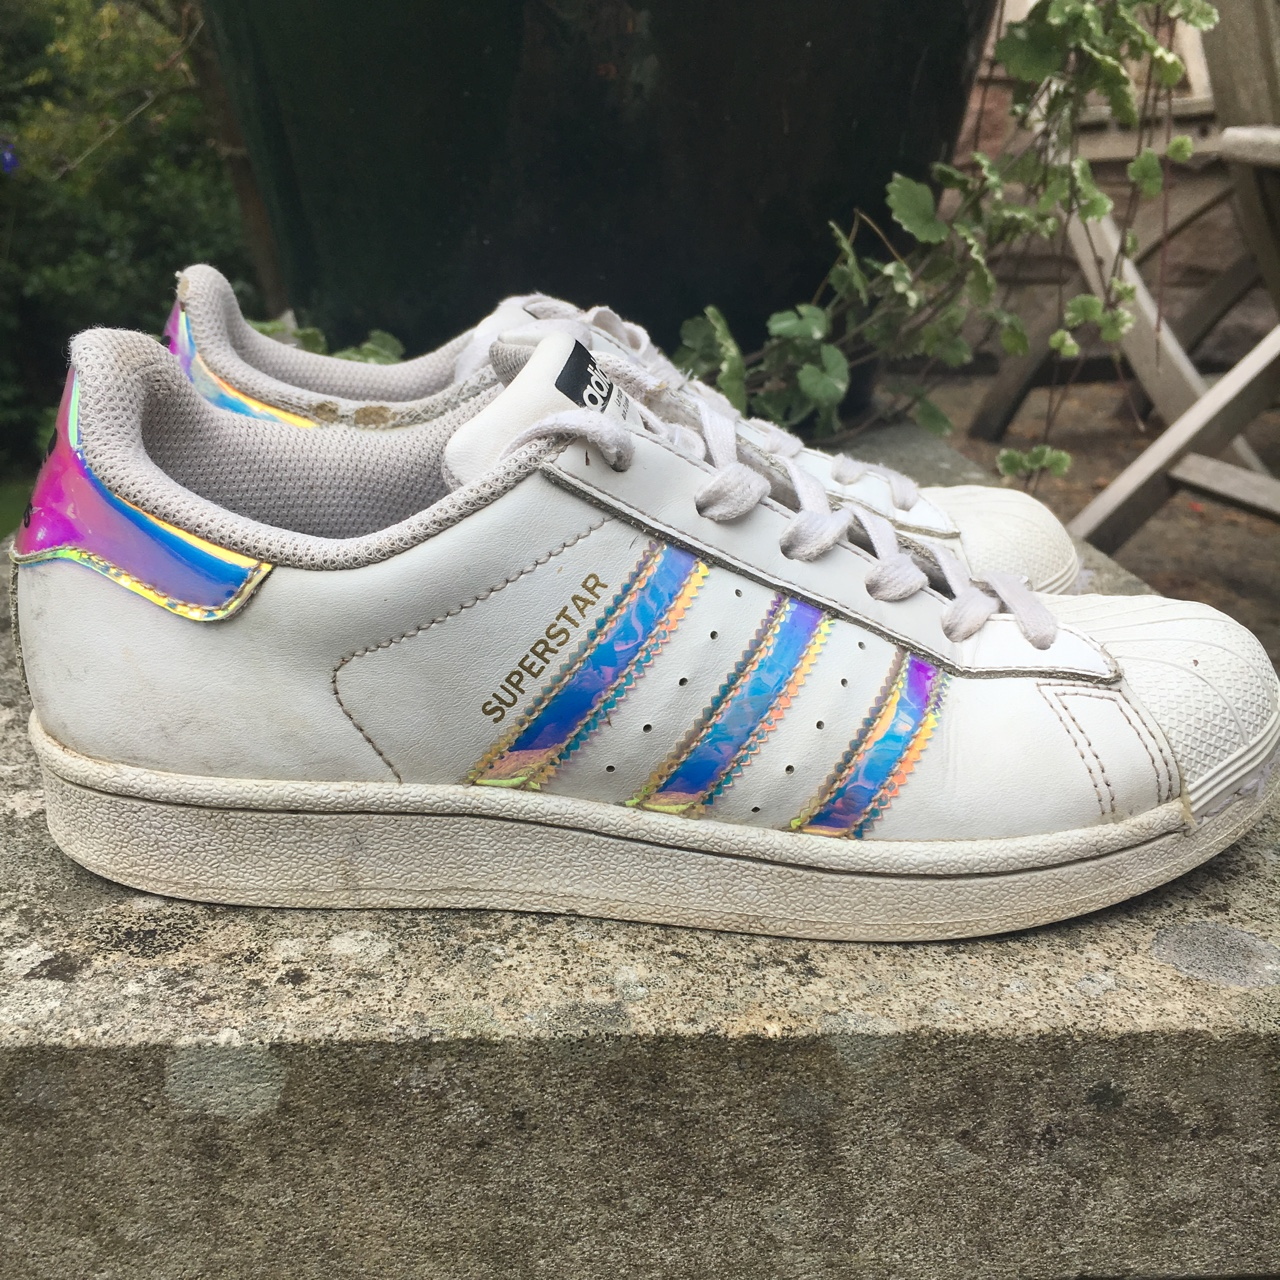 adidas superstar rainbow stripes